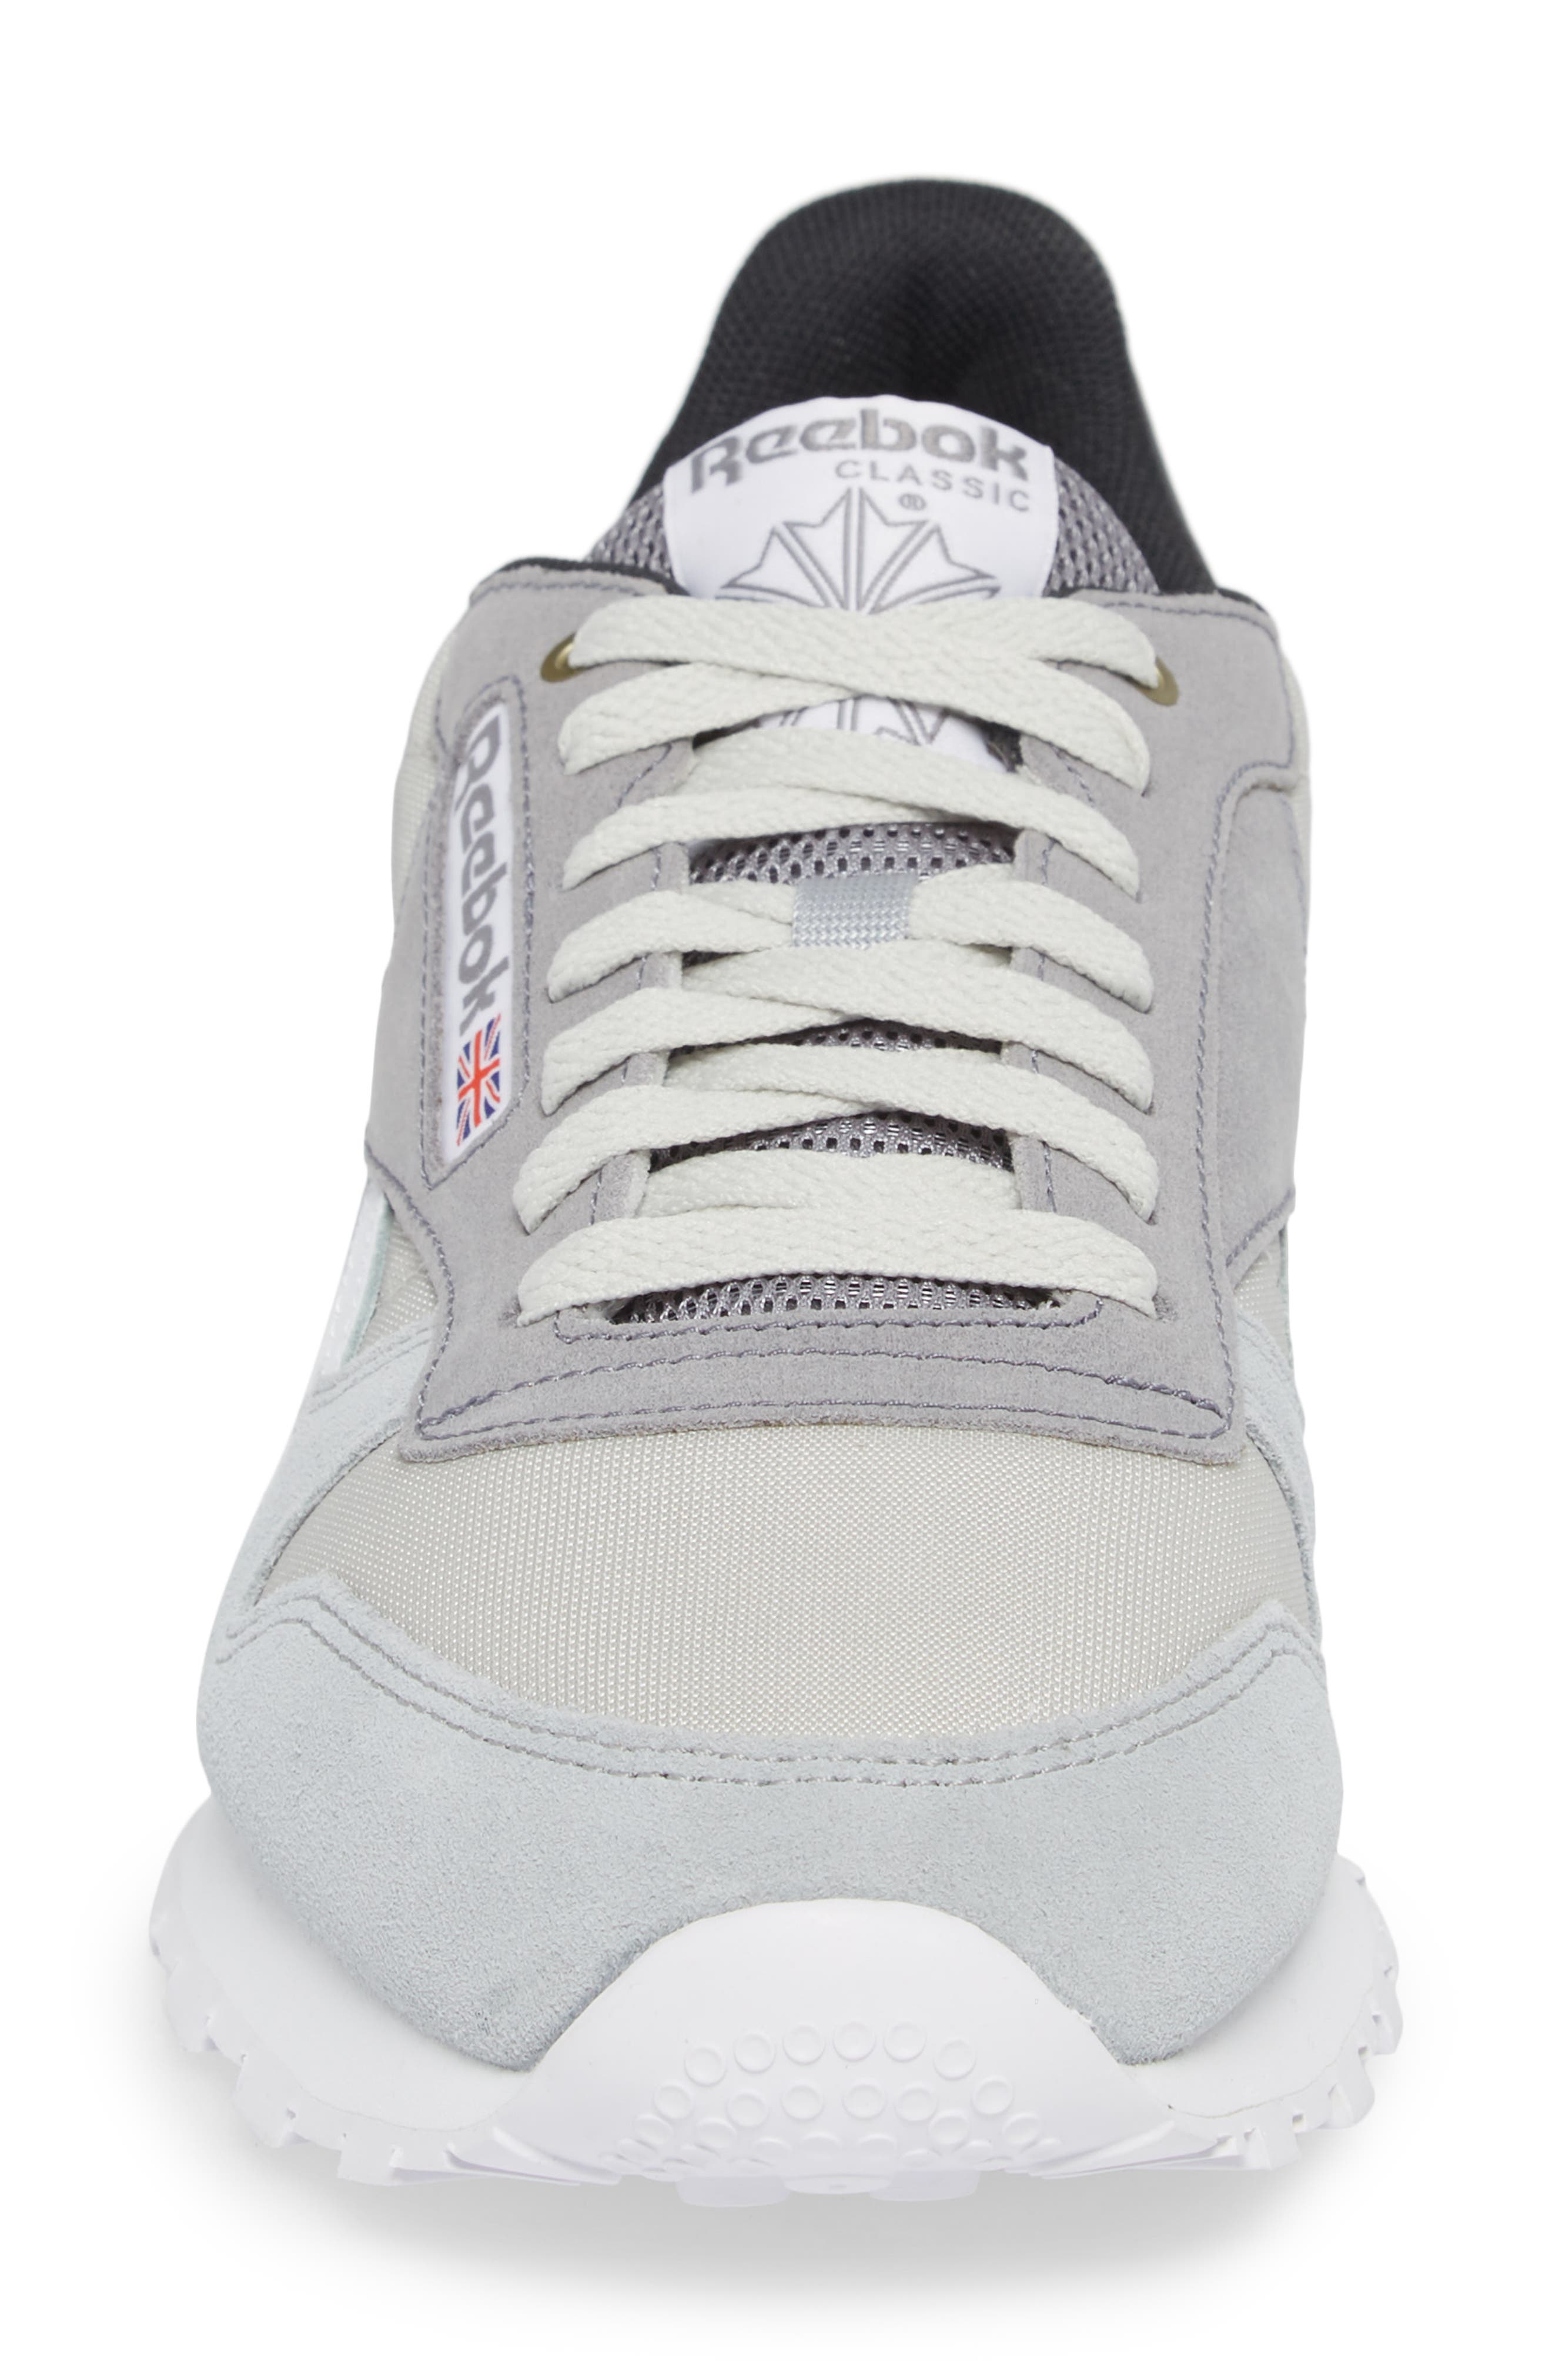 Classic Leather MCCS Sneaker,                             Alternate thumbnail 4, color,                             Grey/ White